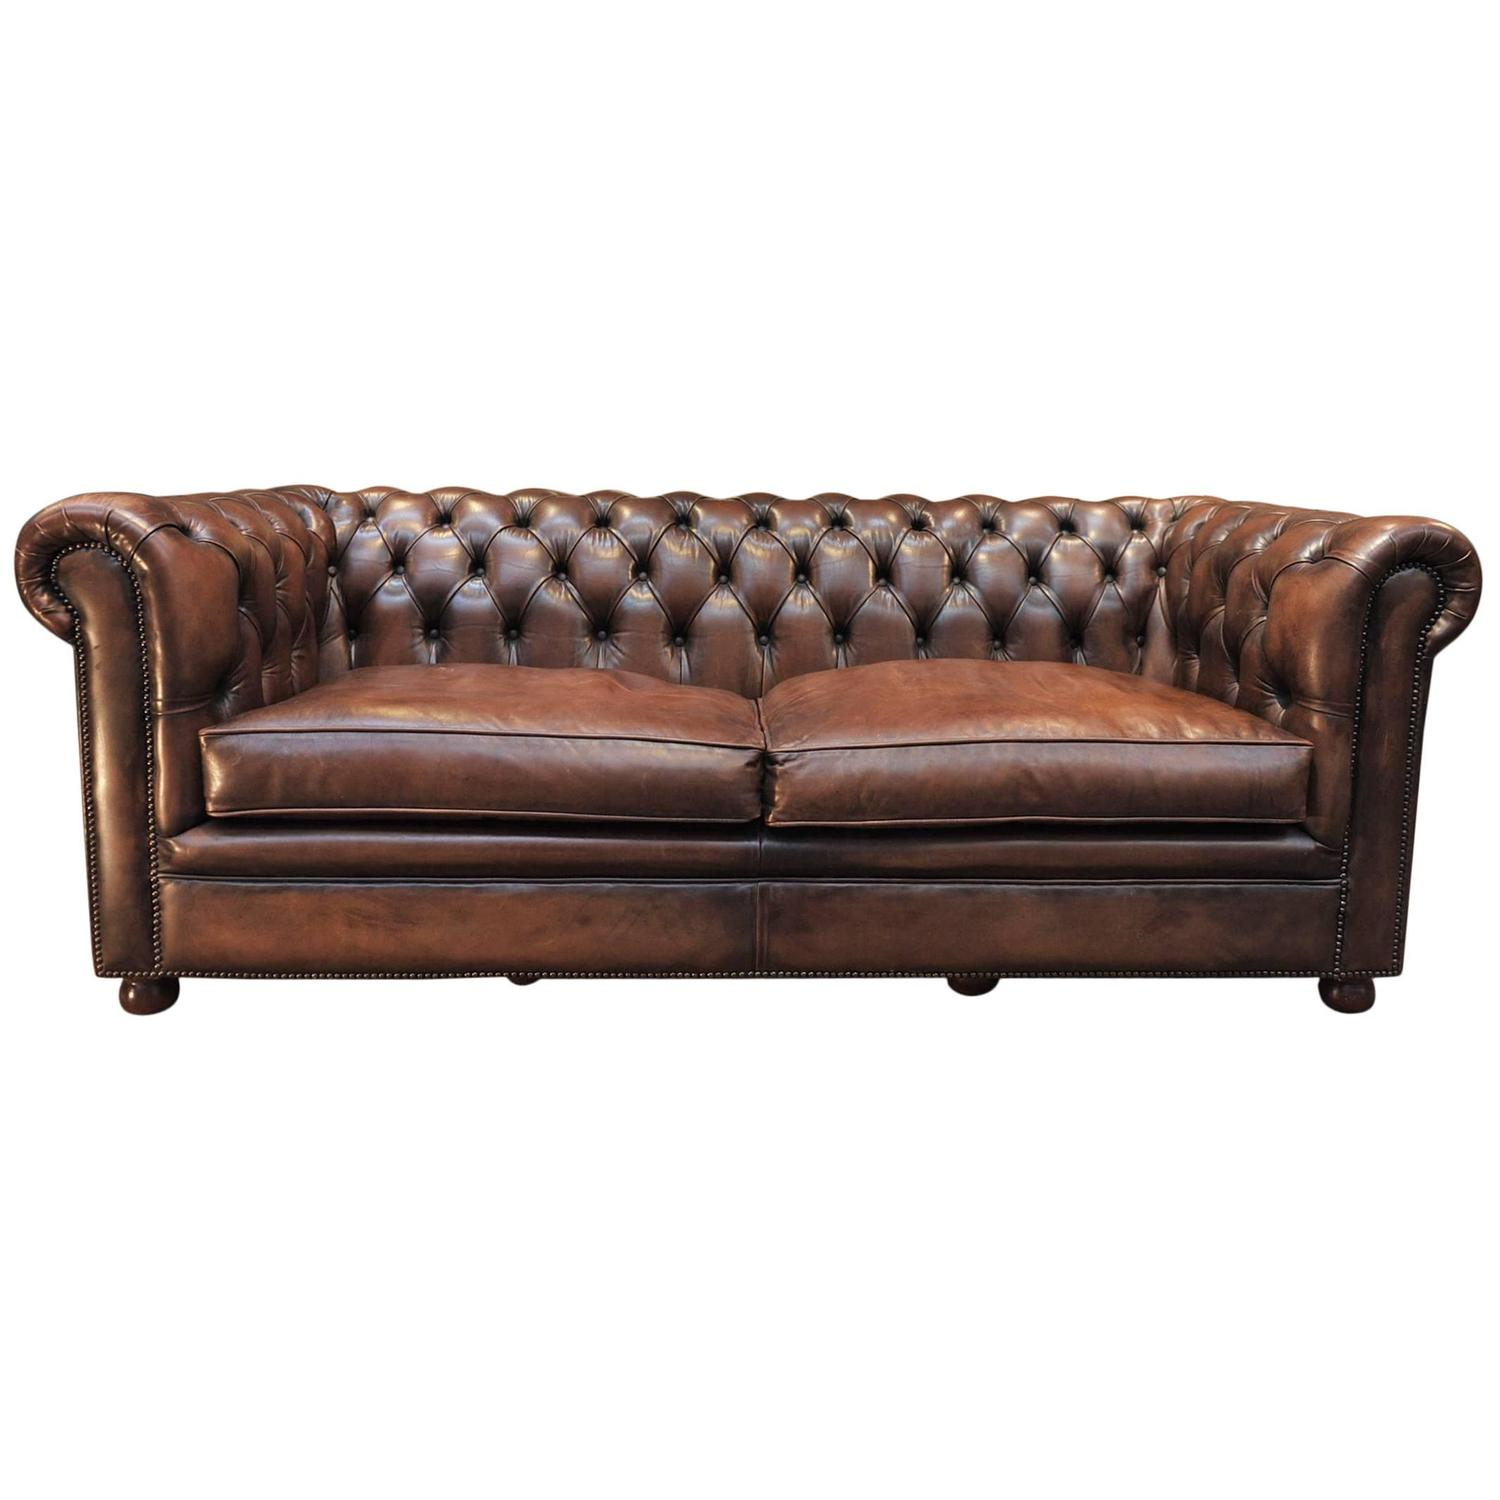 Vintage Brown French Leather Chesterfield Sofa At 1stdibs